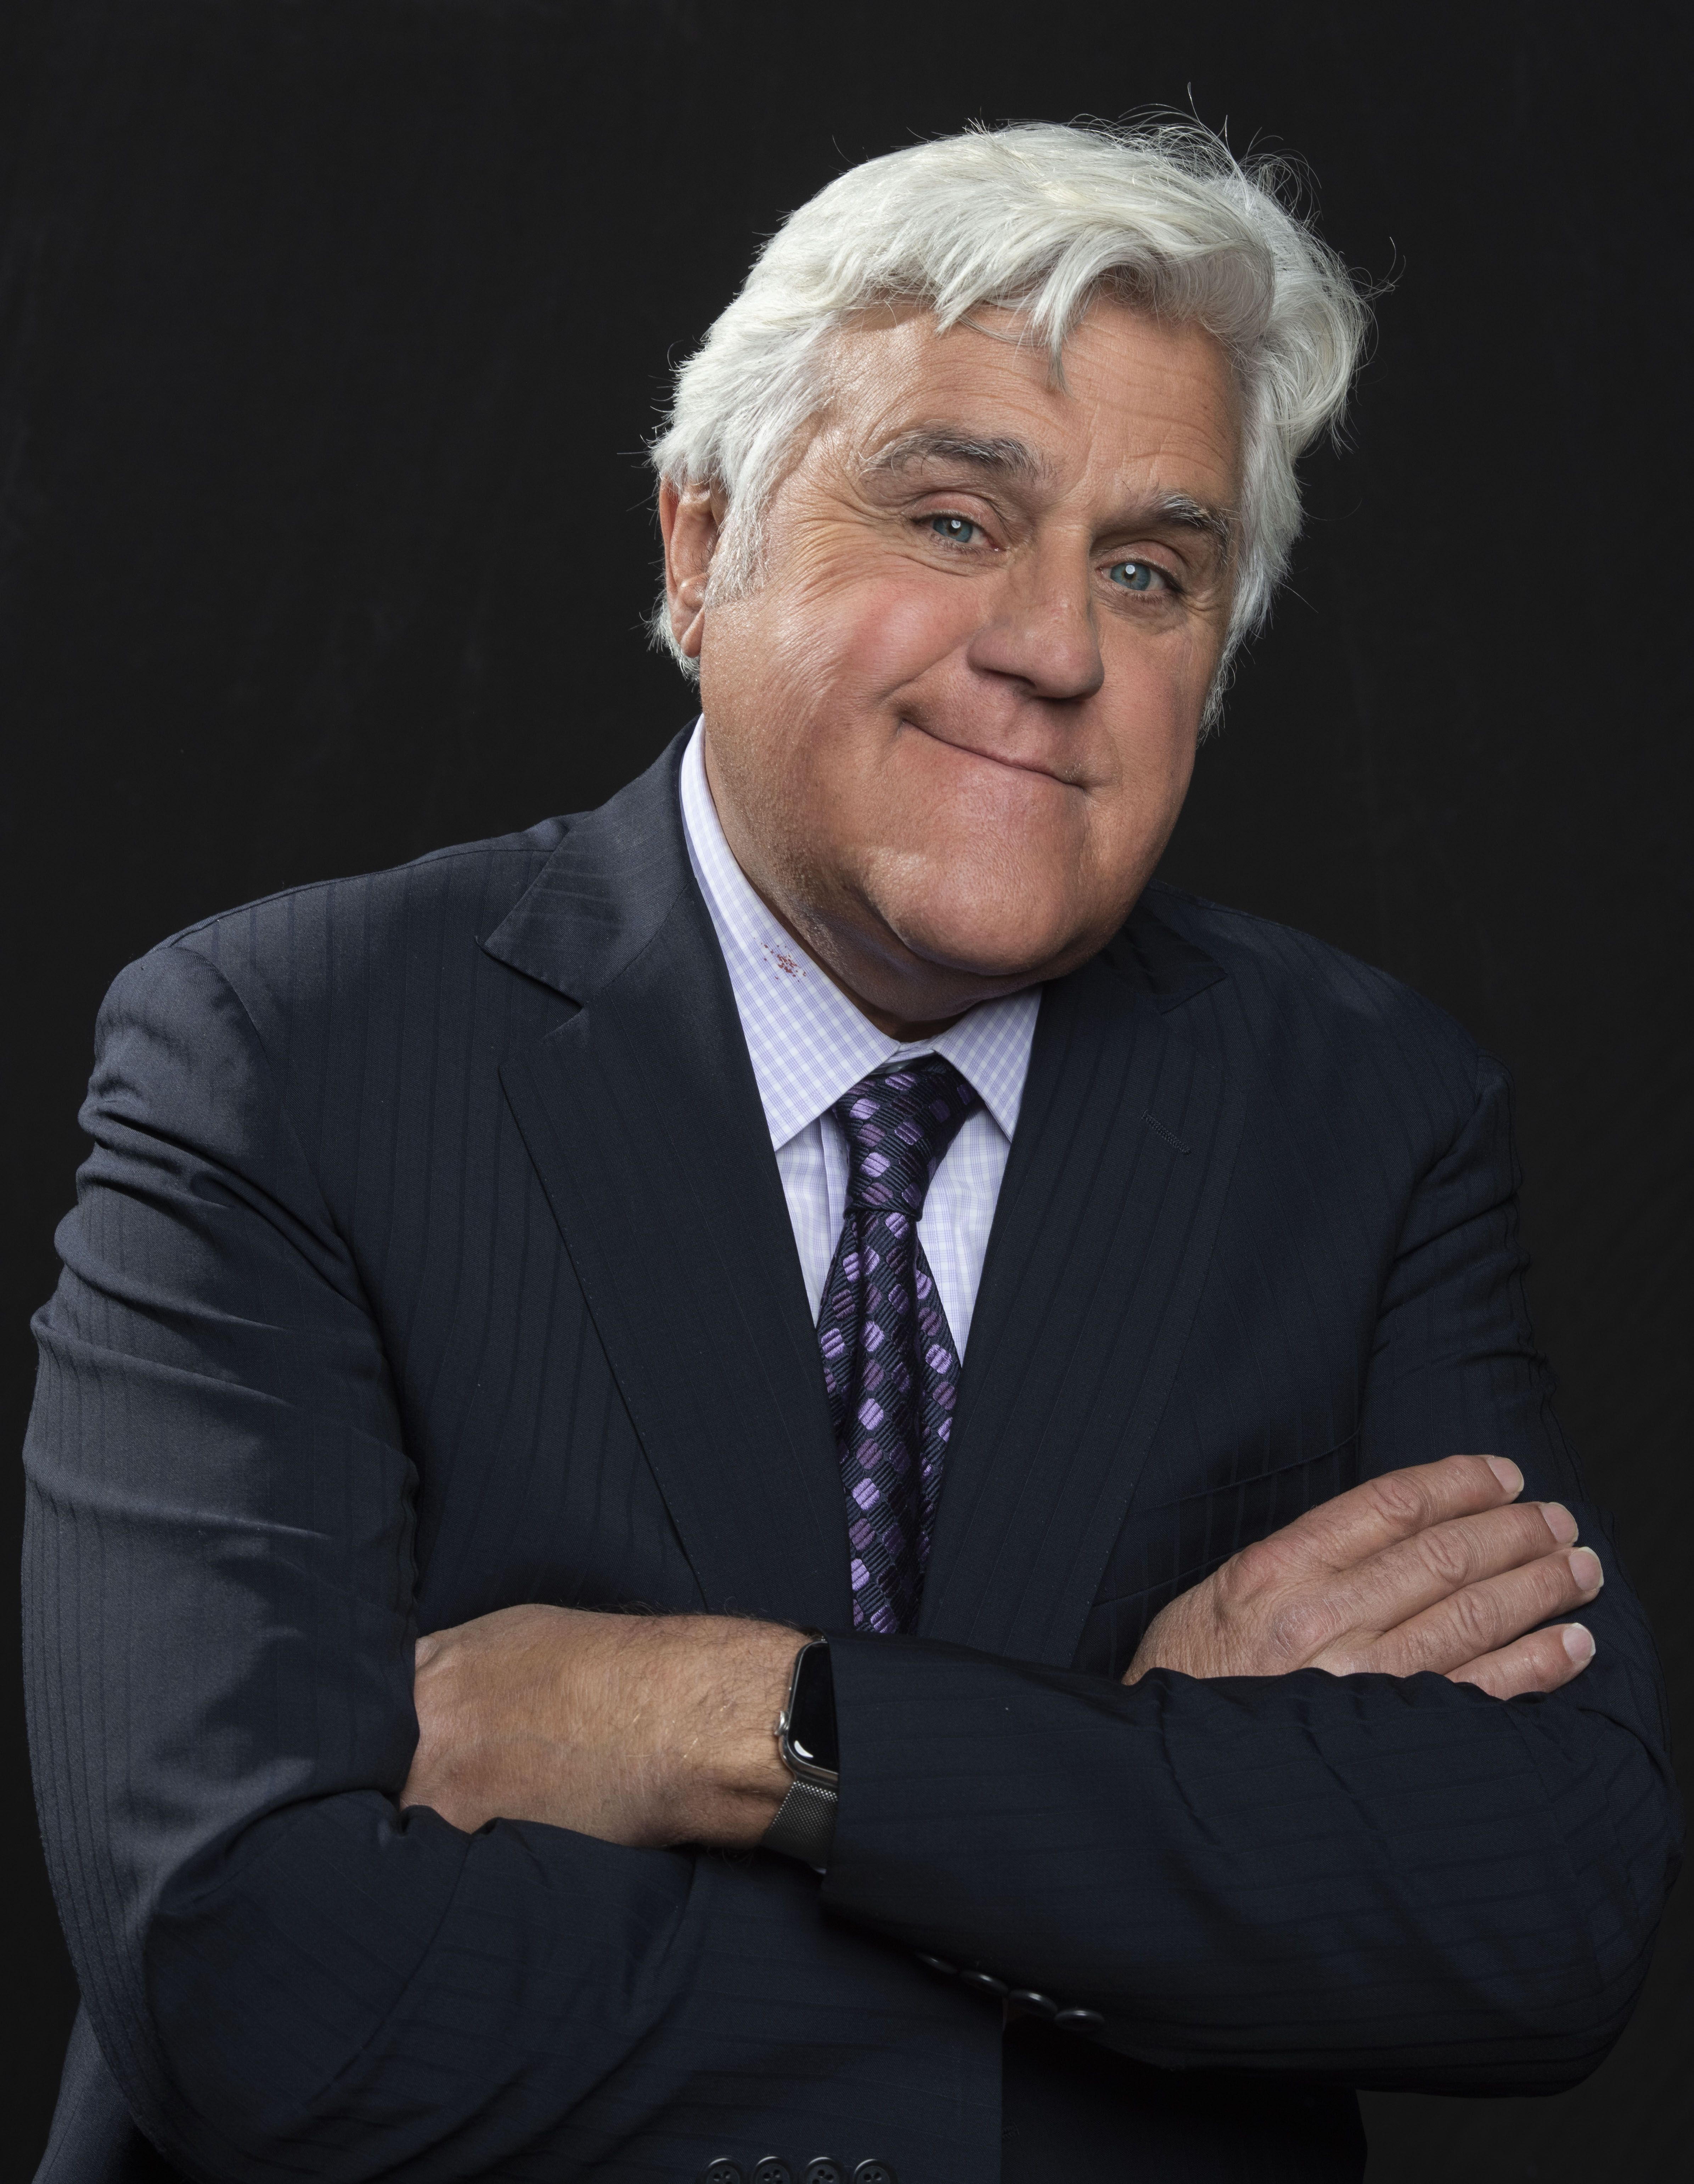 'Laughter is a terrible medicine' How comedian Jay Leno